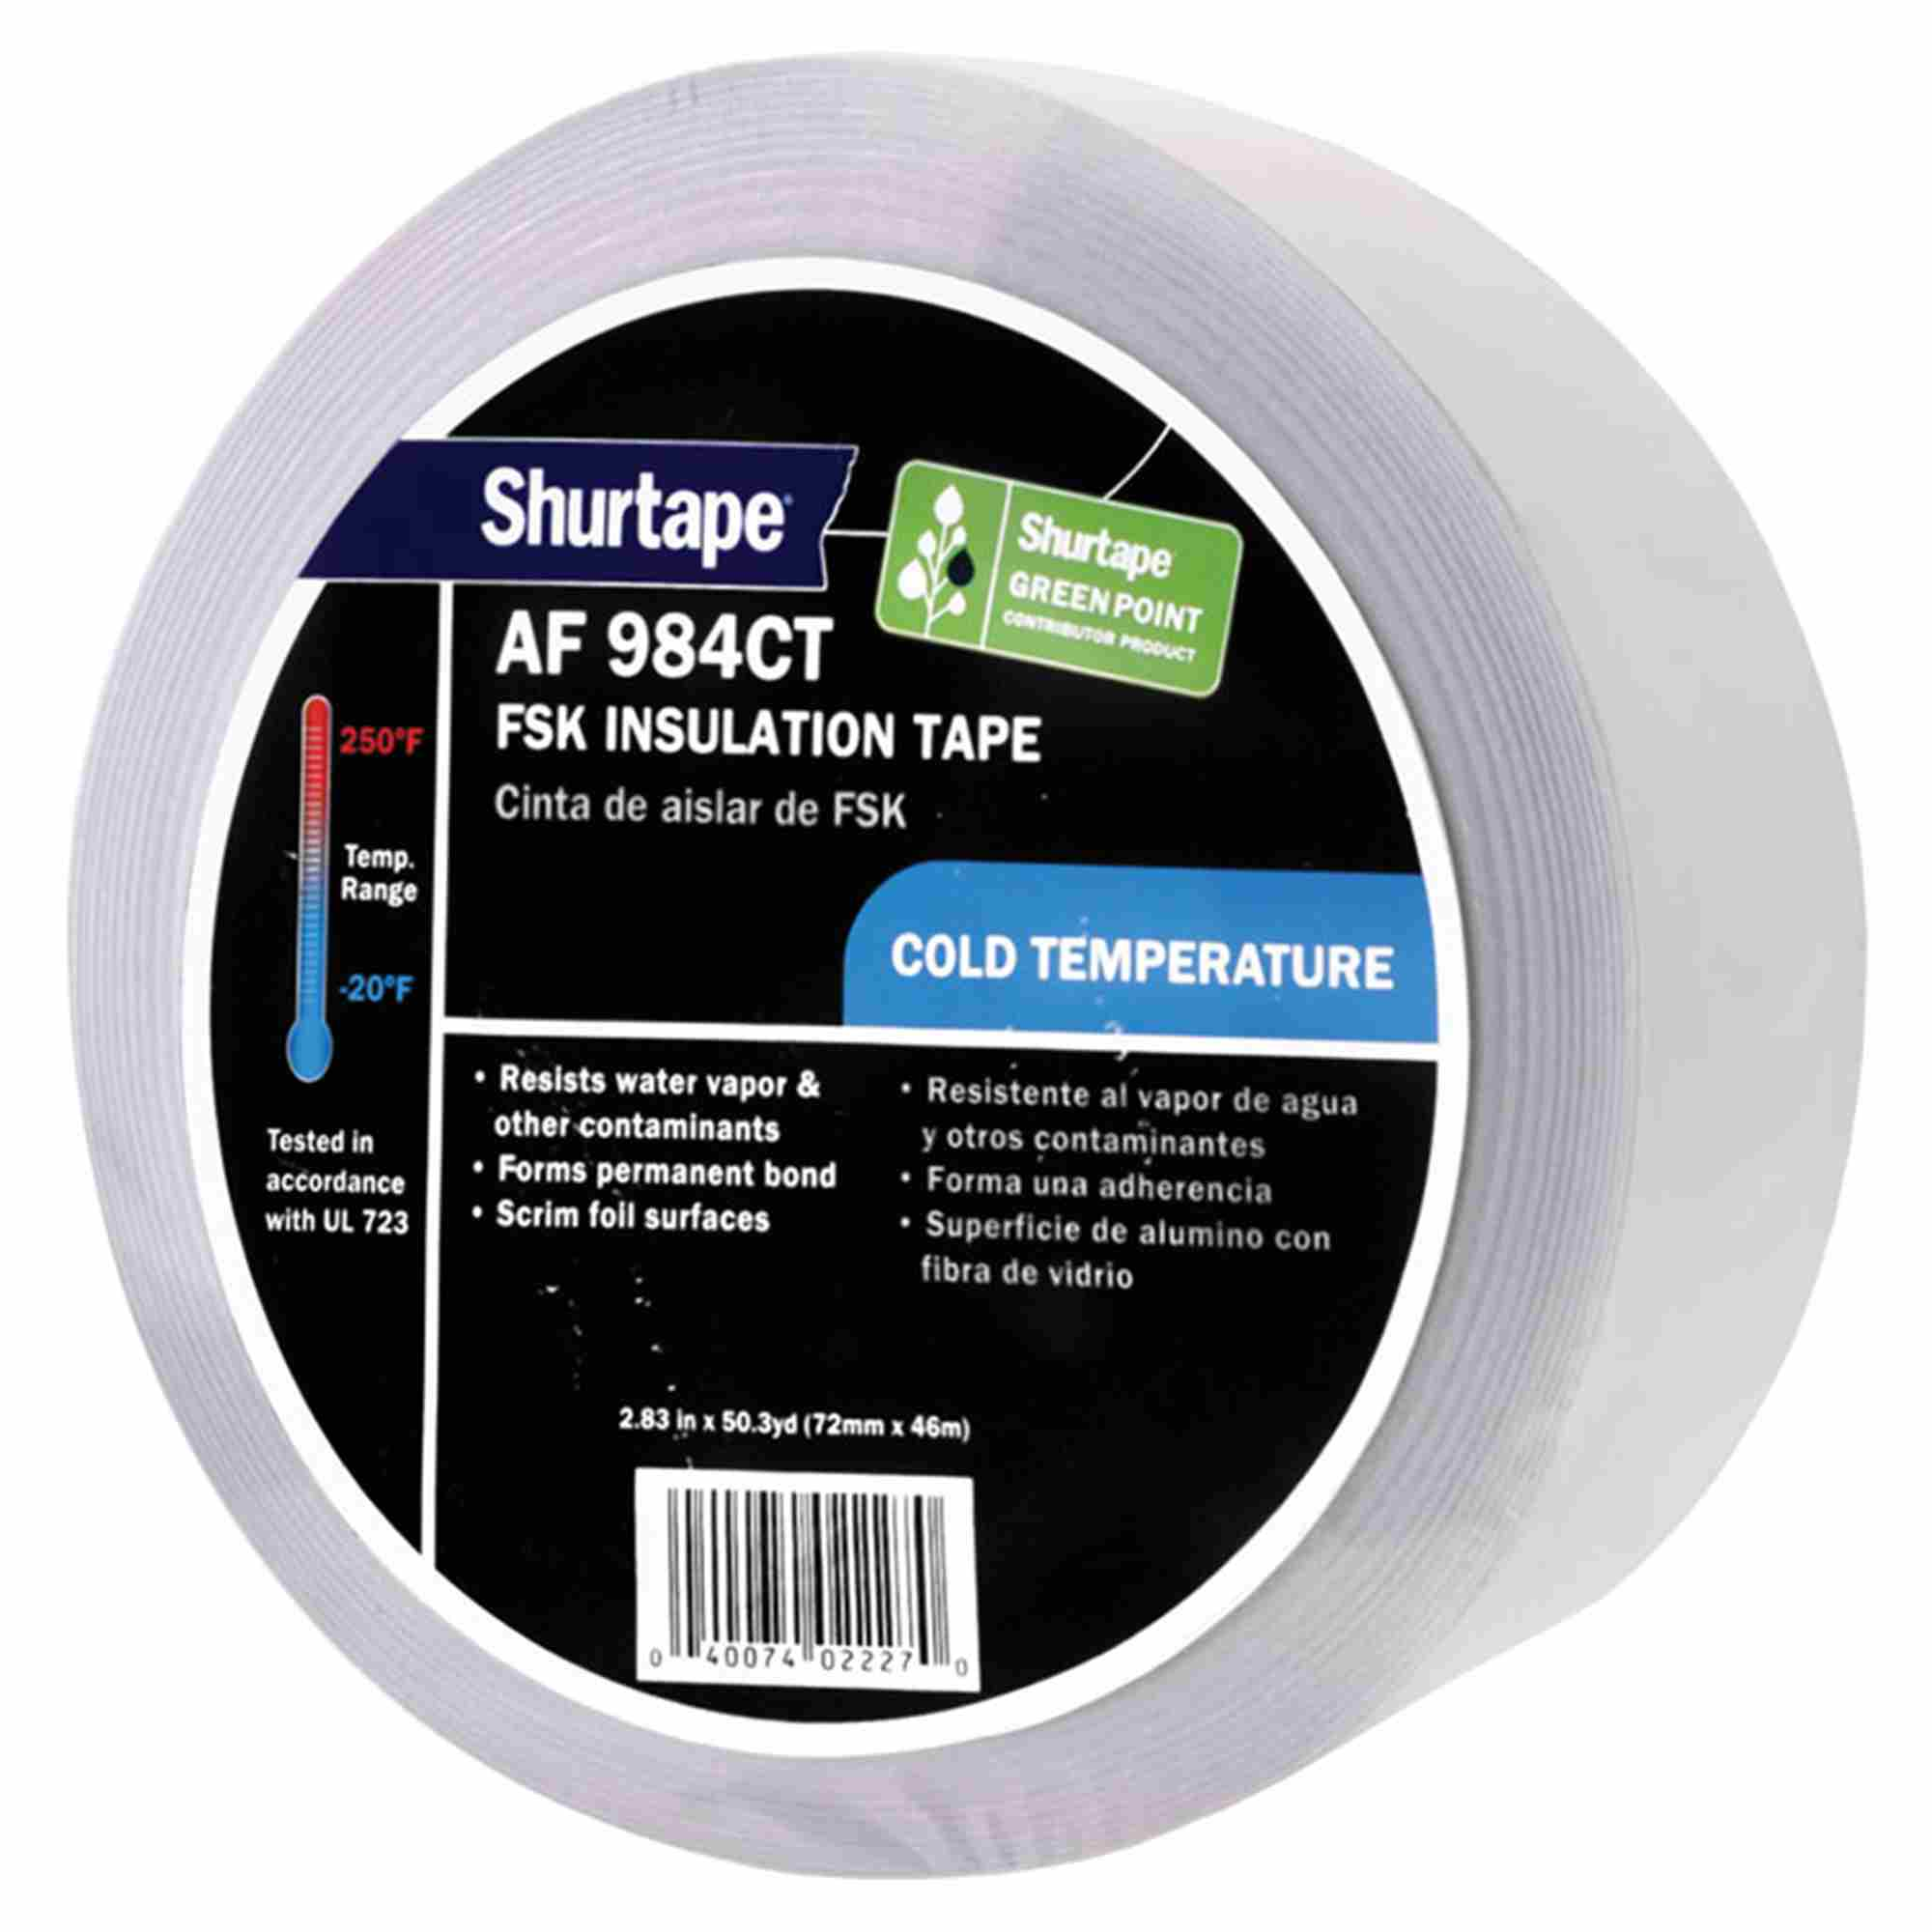 232036 Shurtape Tape  Duct  FKS  Cold